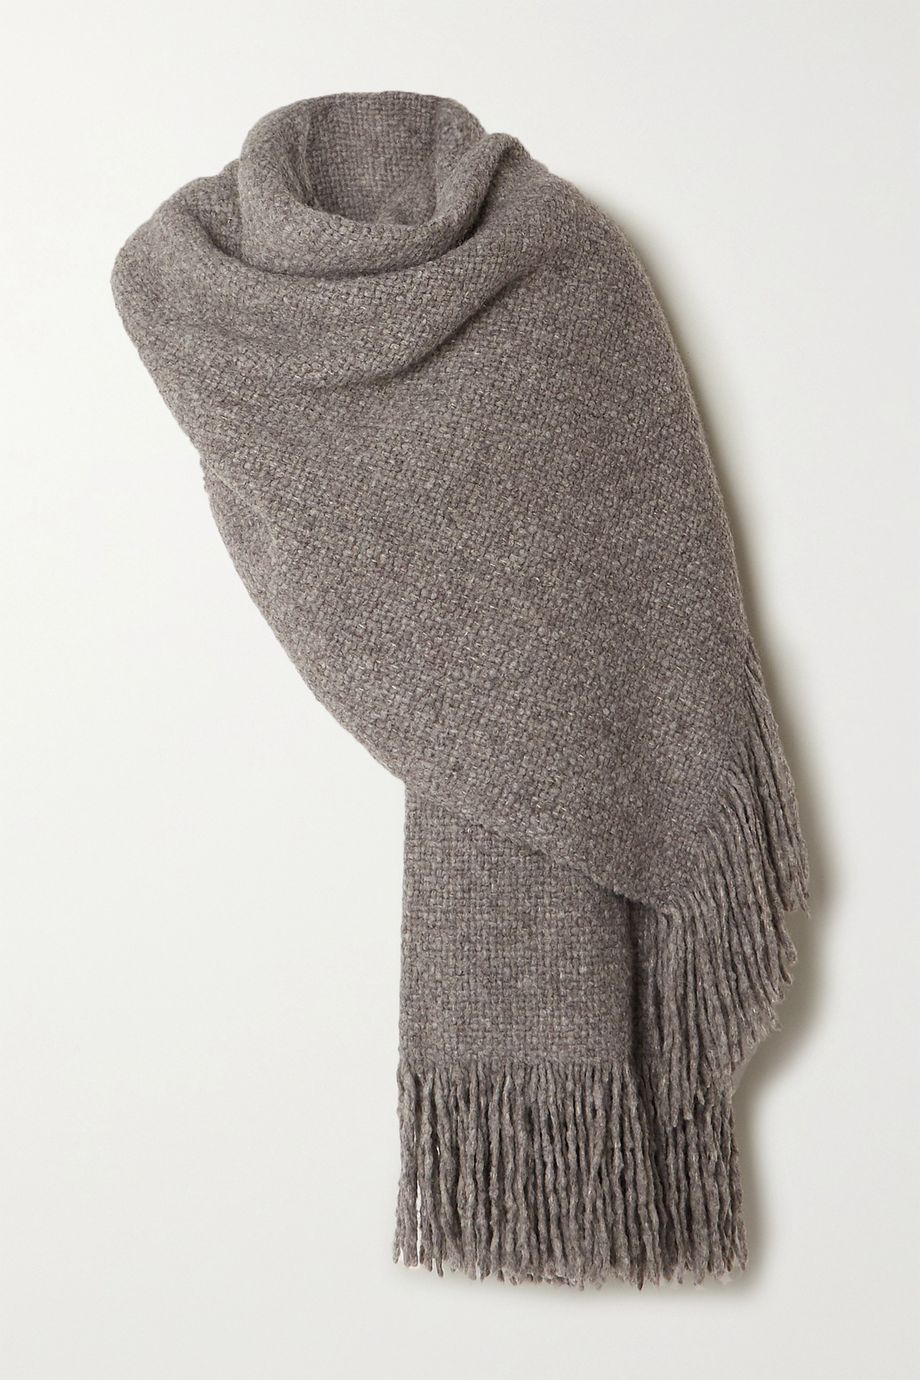 Lauren Manoogian Oversized fringed mélange alpaca, wool and cotton-blend wrap